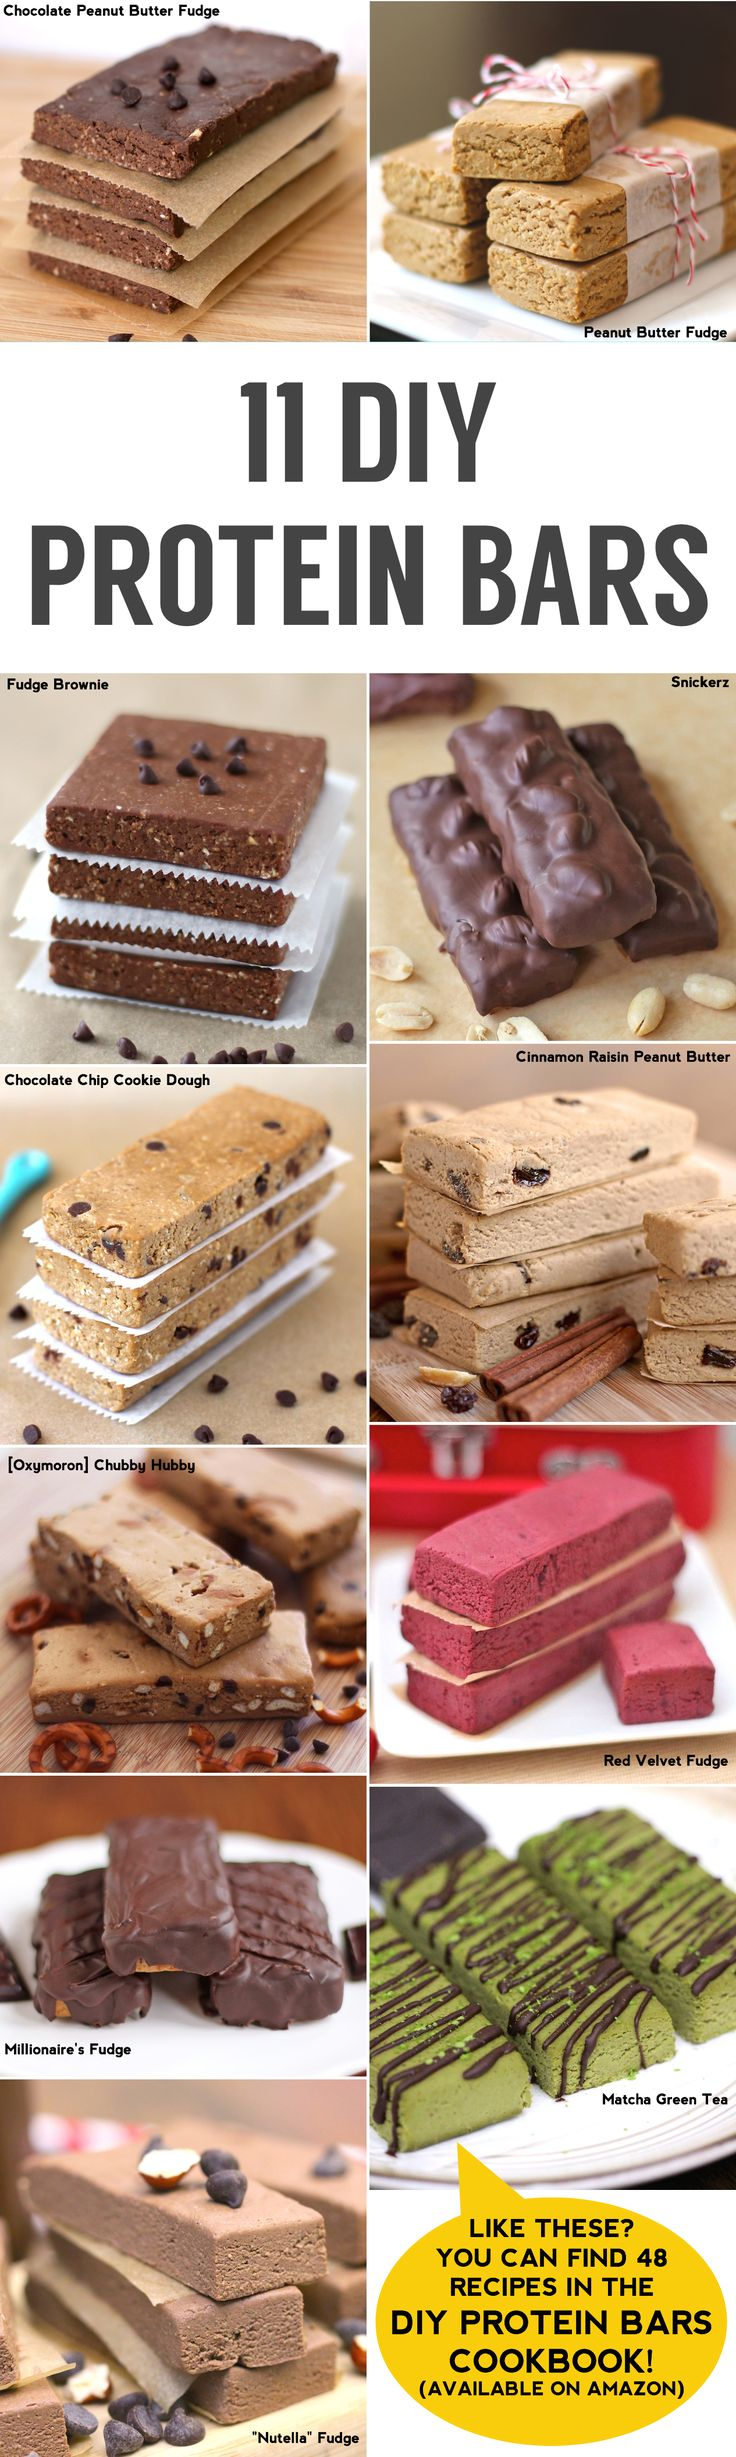 DIY Protein Bars -- Great for snacking and dessert #HealthyEating #CleanEating #ShermanFinancialGroup